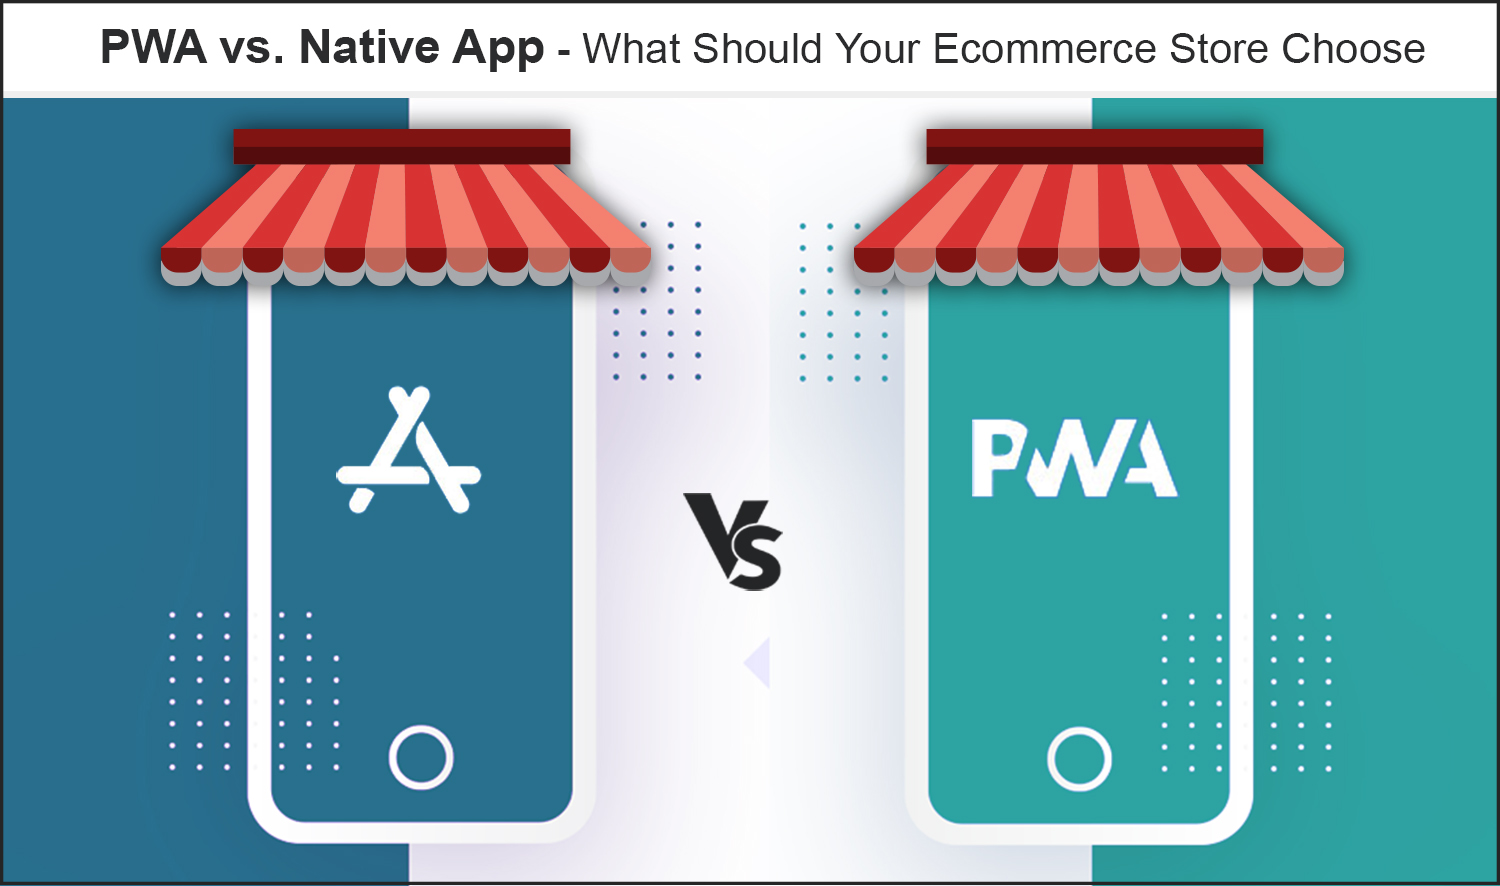 01- PWA vs Native App which is better?